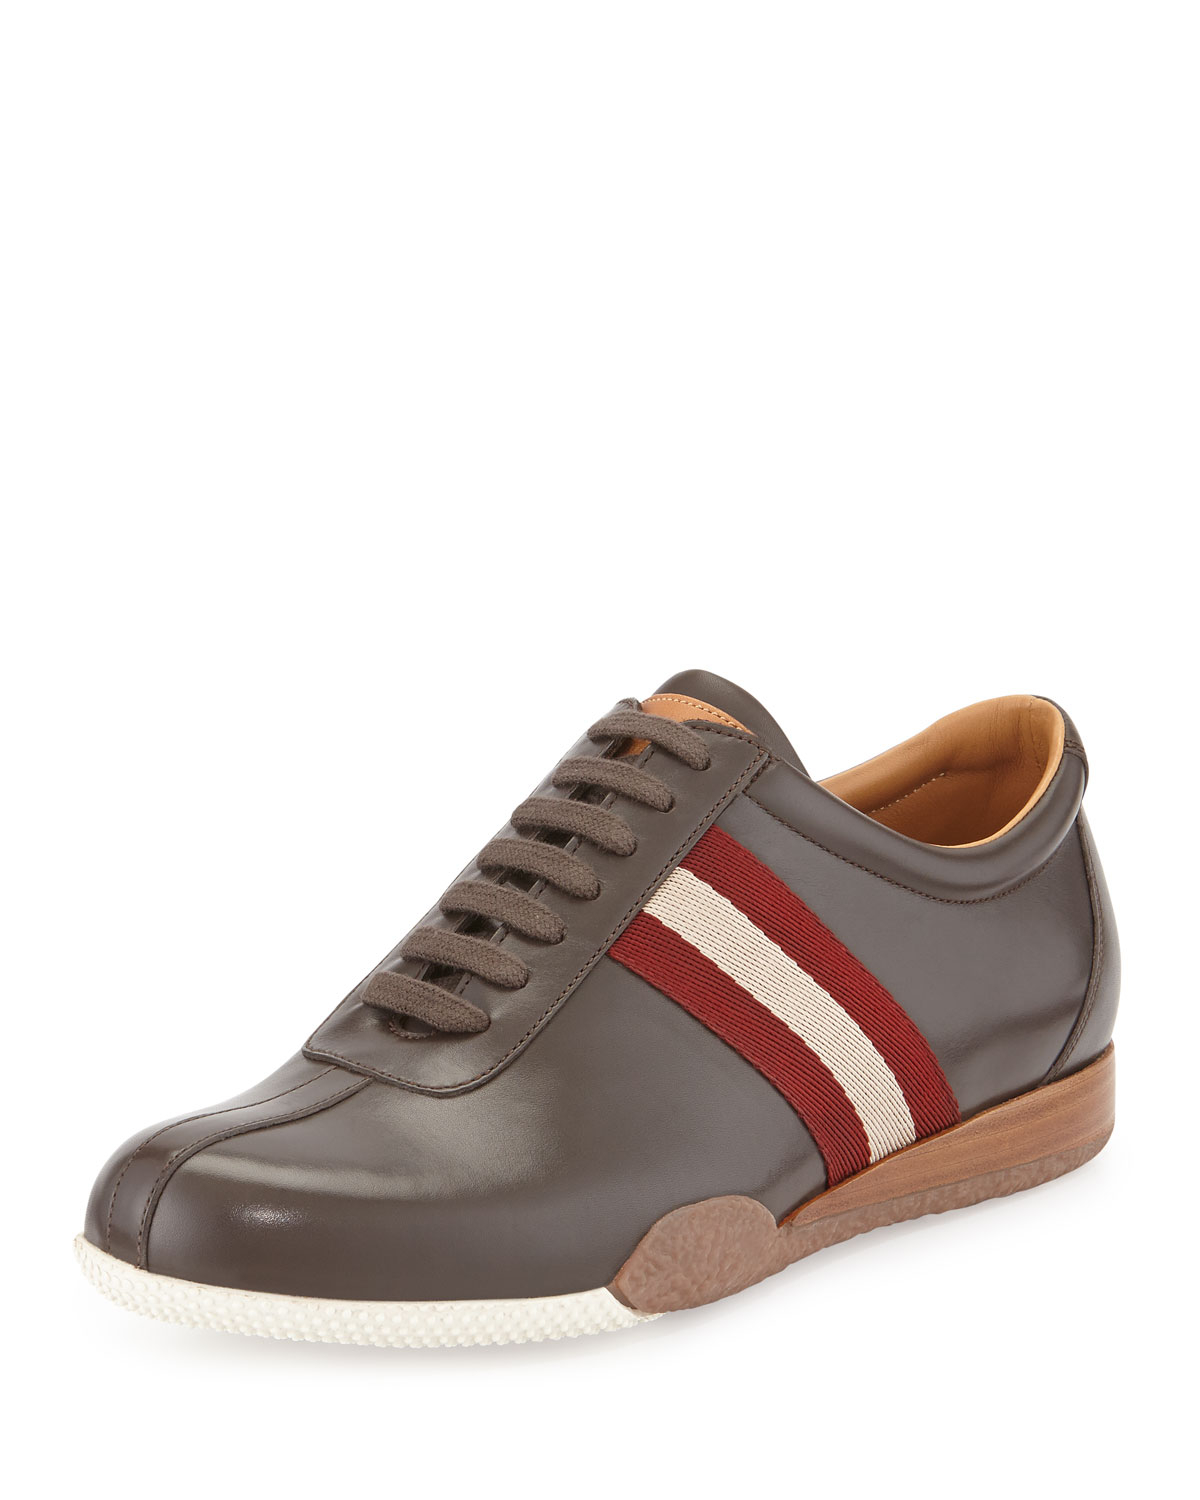 Bally Freenew Leather Sneakers For Men